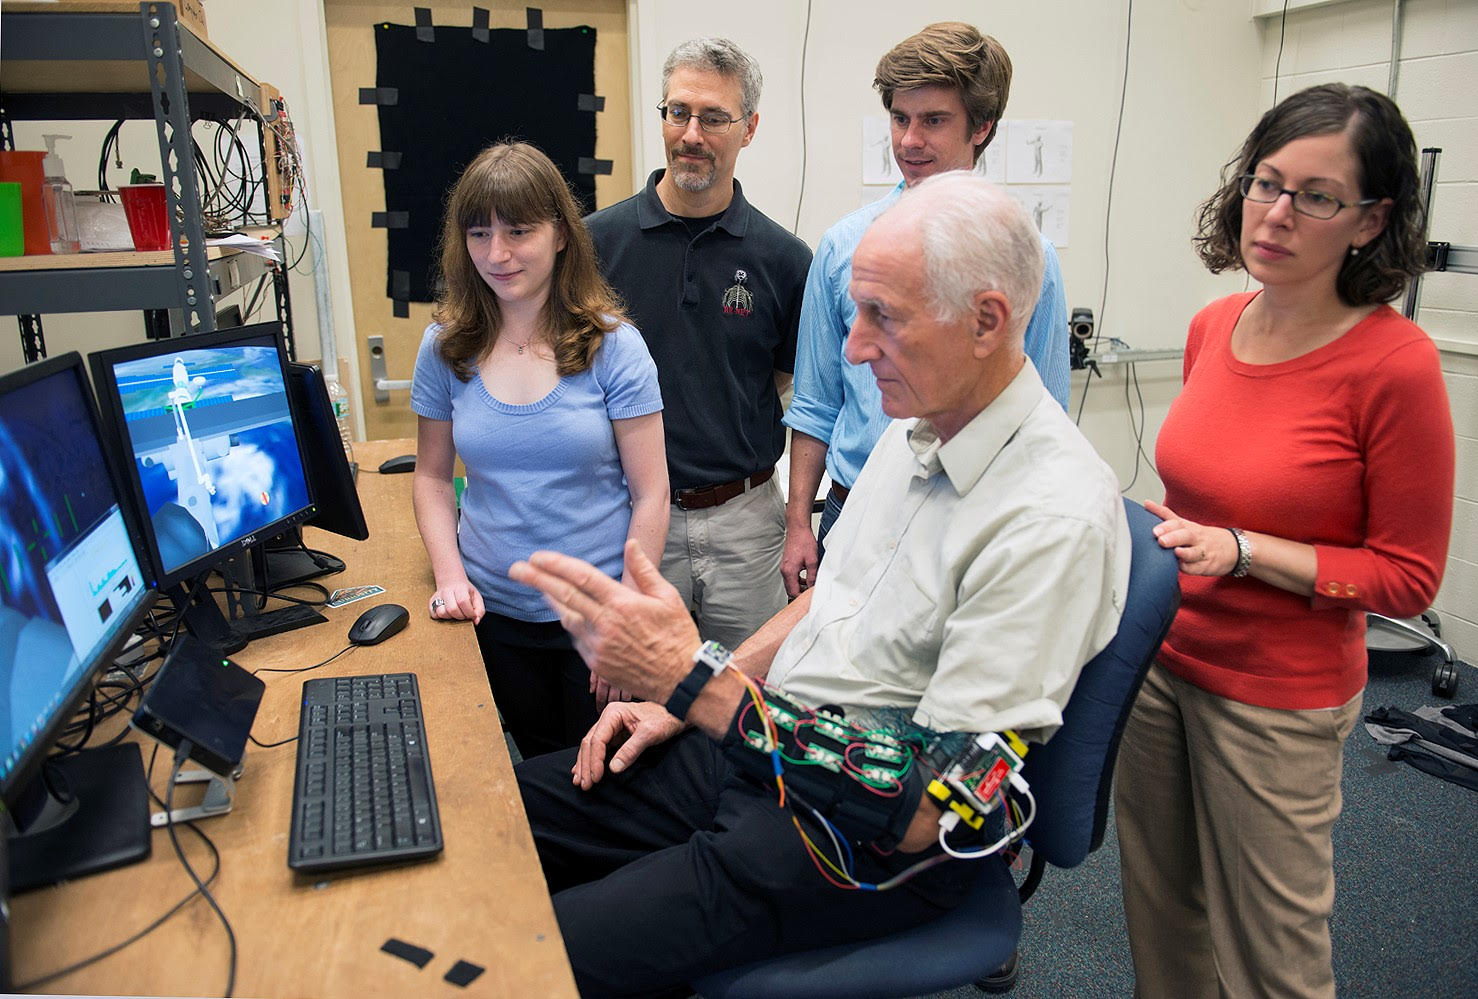 Leia Strling (Right) and other MIT and NASA Jet Propulsion Lab researchers along with former Astronaut Jeff Hoffman use a sensor sleeve to evaluate a gesture interface system for controlling a simulated robotic arm.